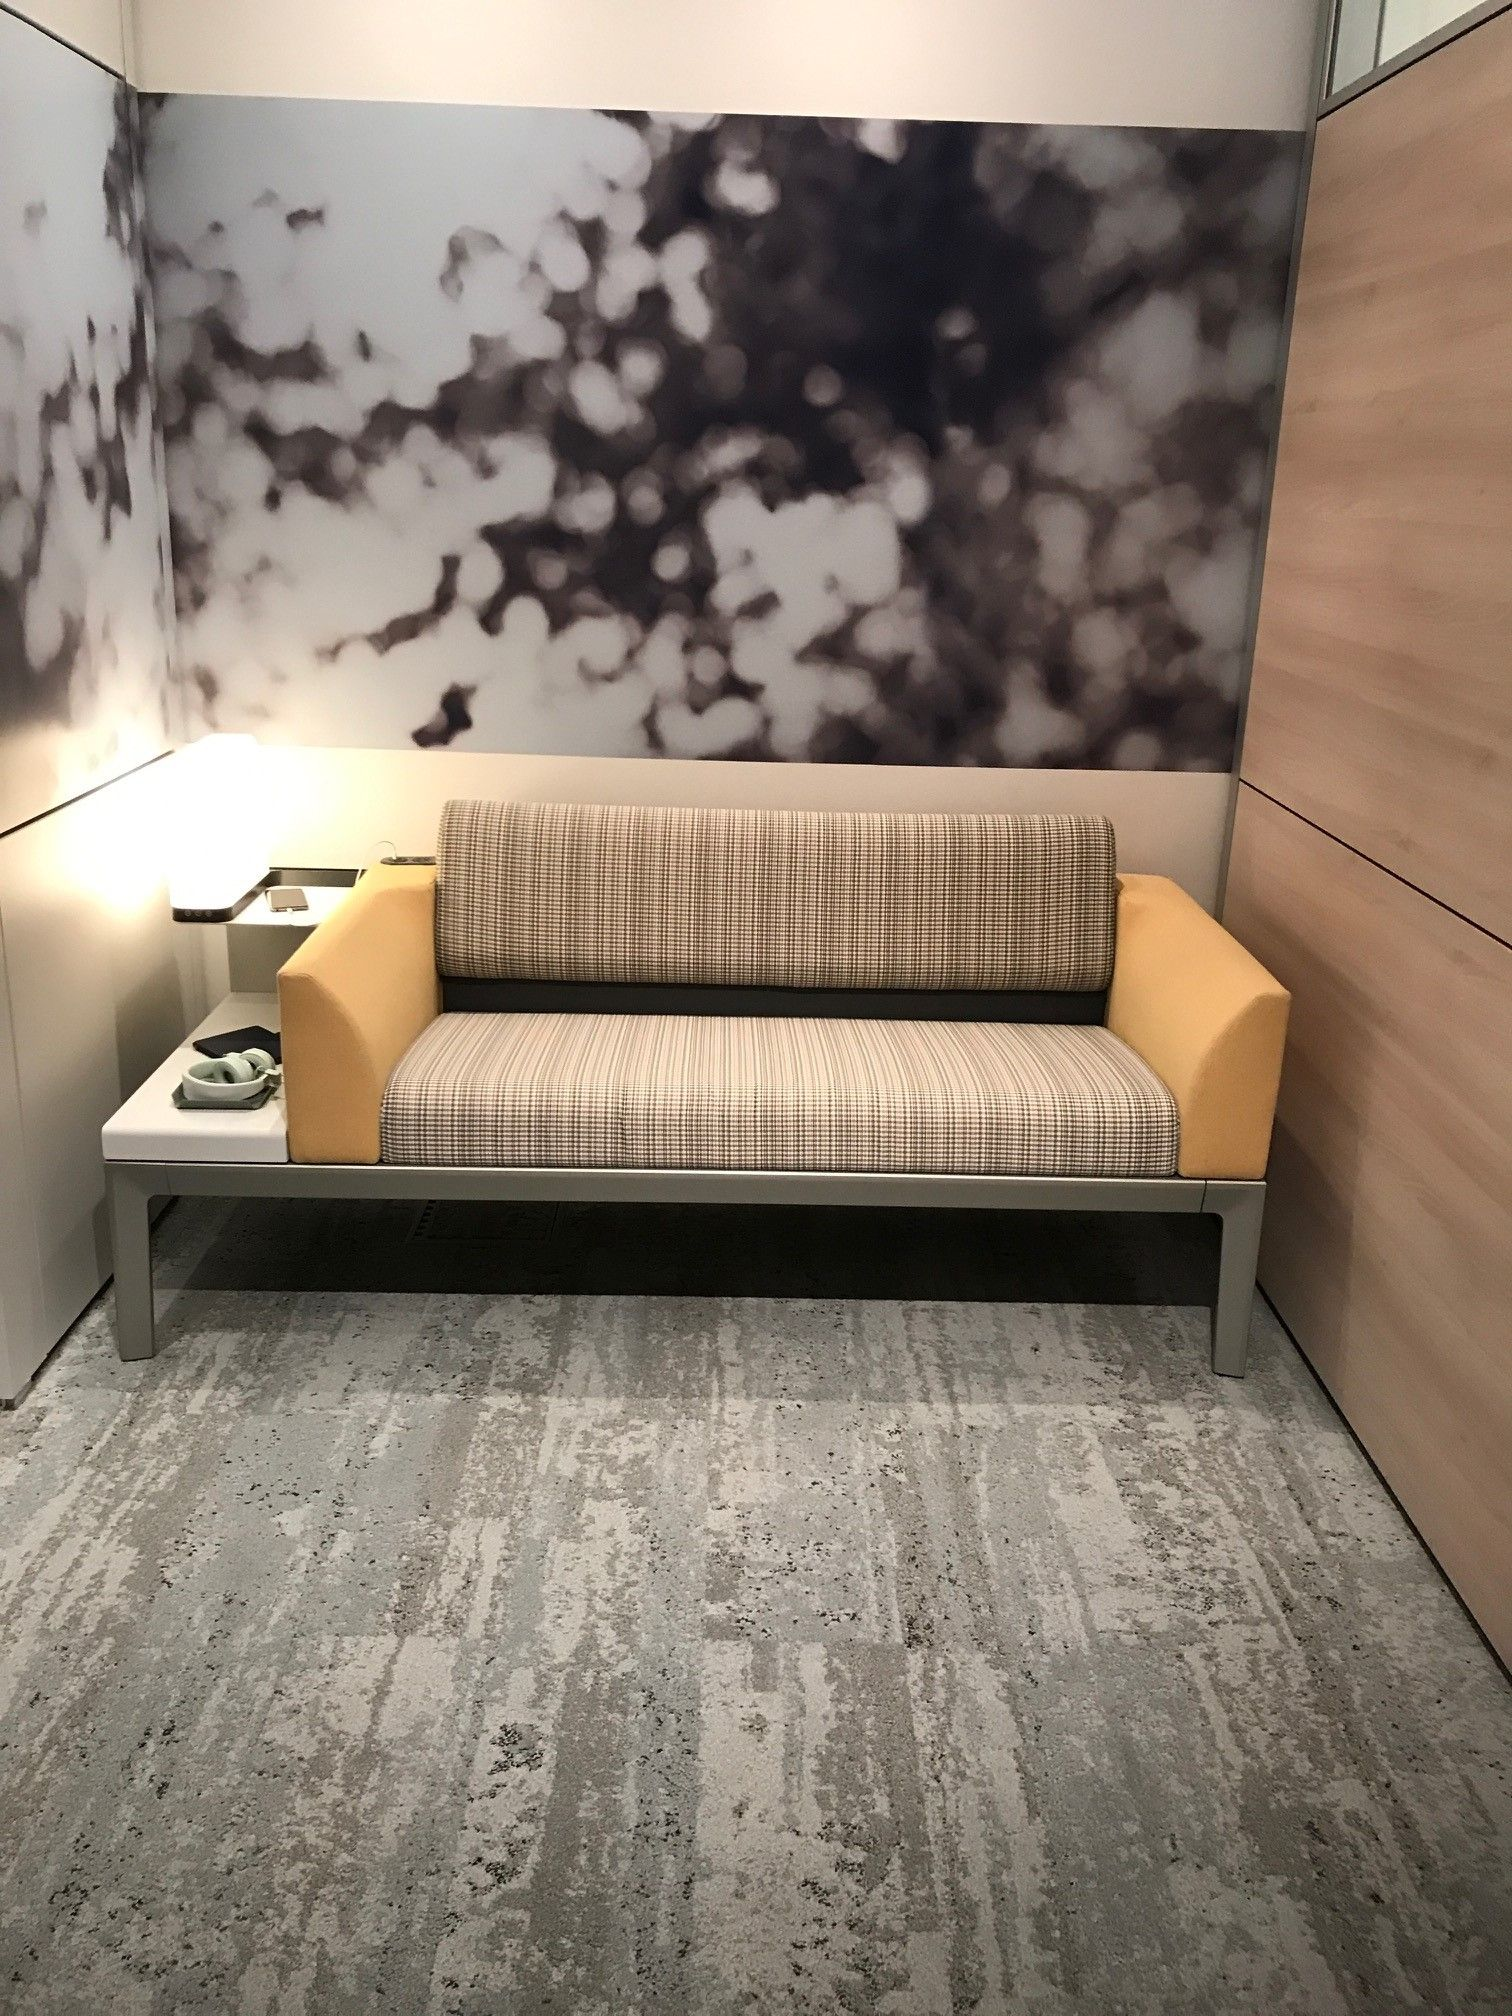 Steelcase Healthcare stunning waiting room Furniture